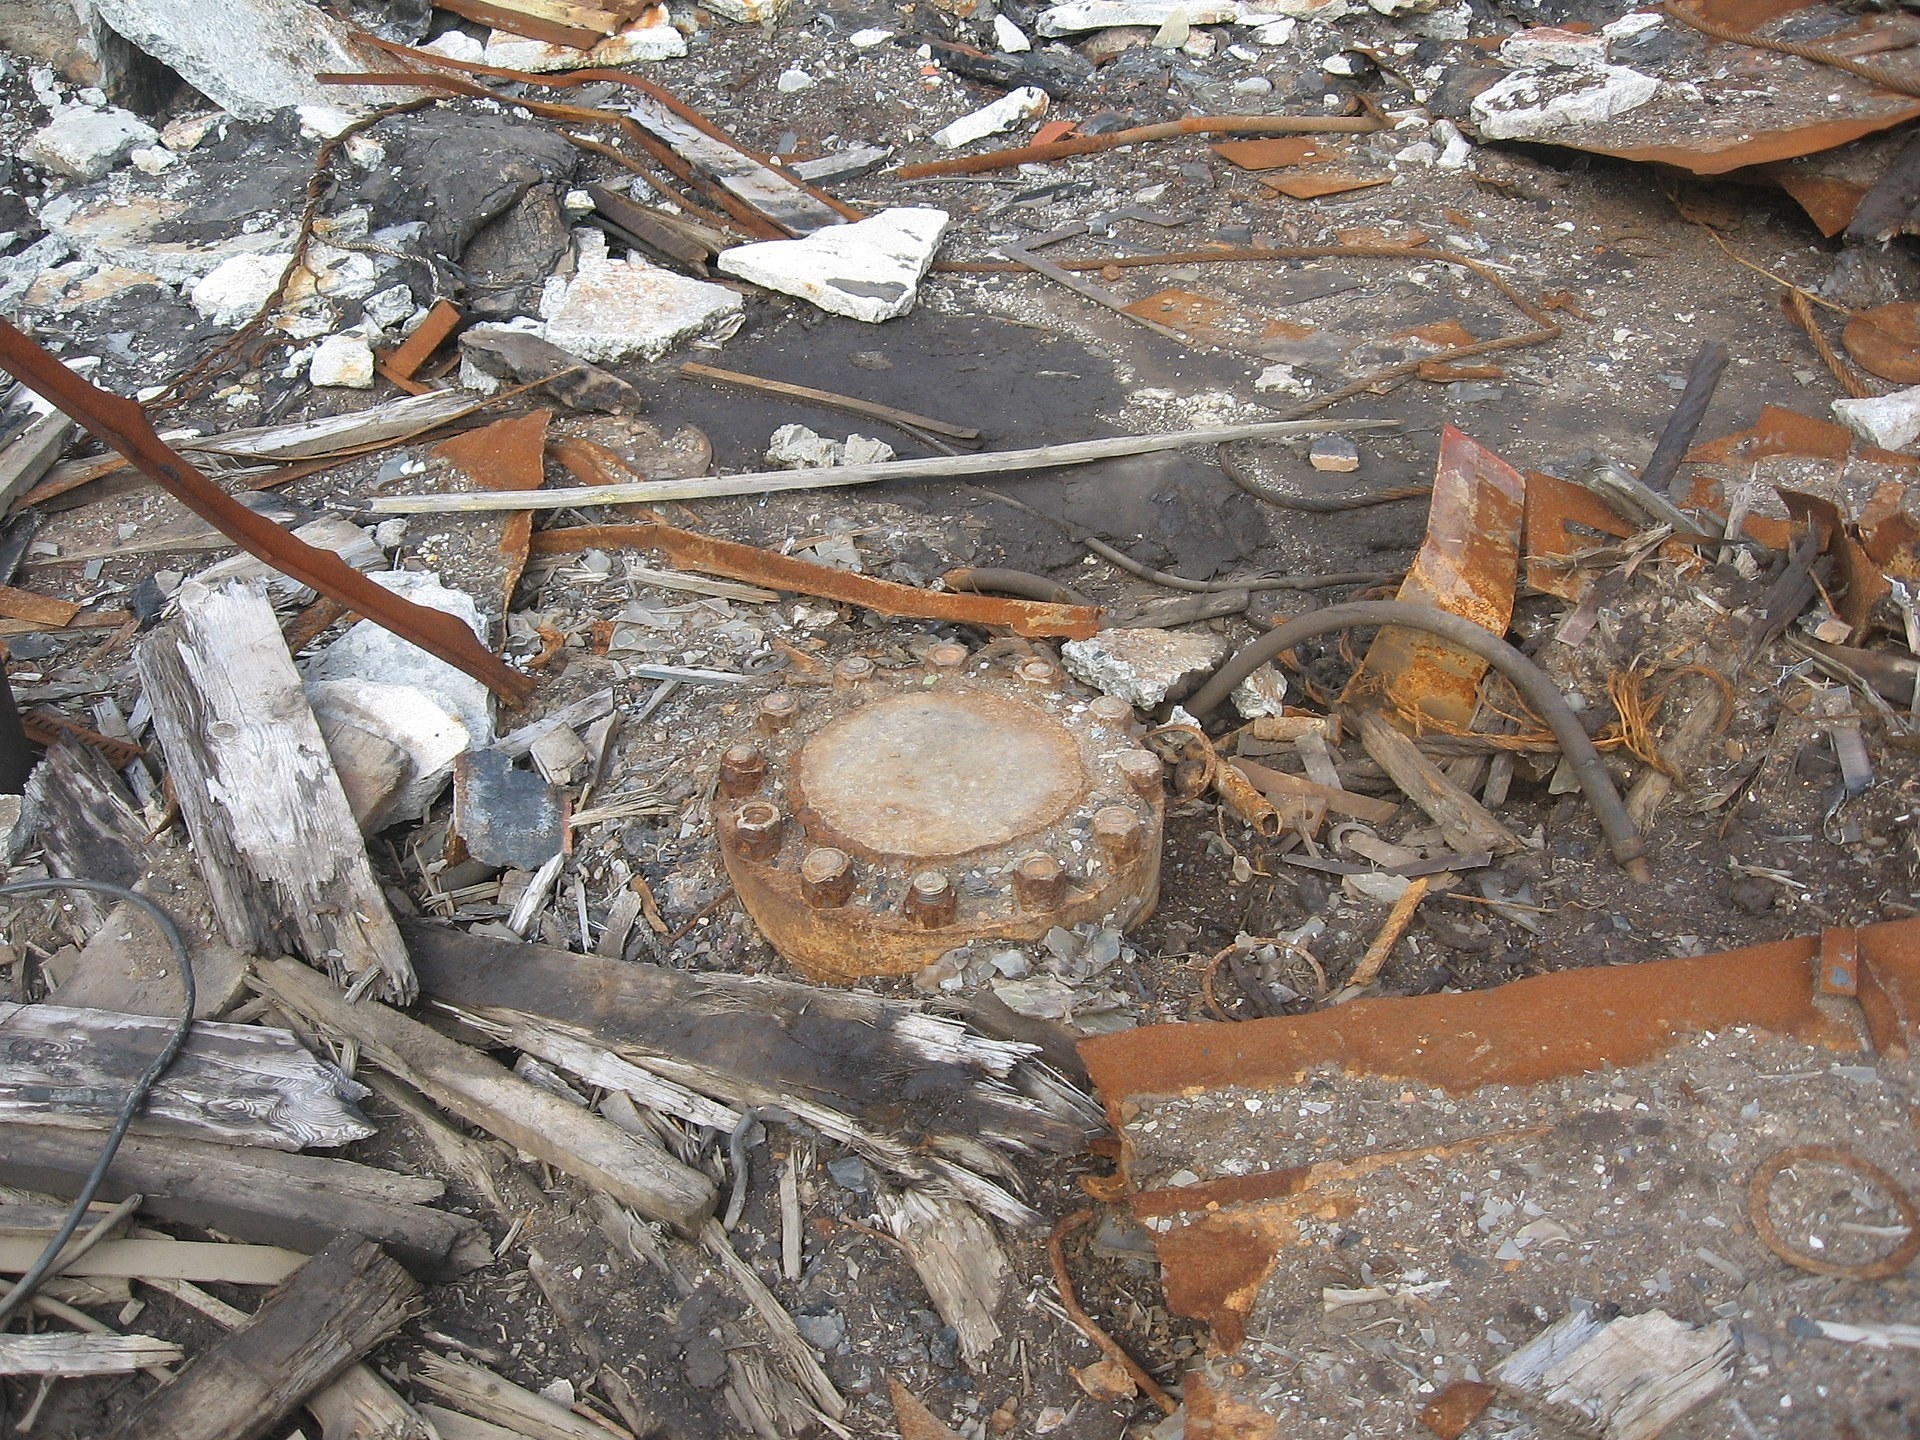 A round cap securely bolted over the hole, surrounded by rubble and debris